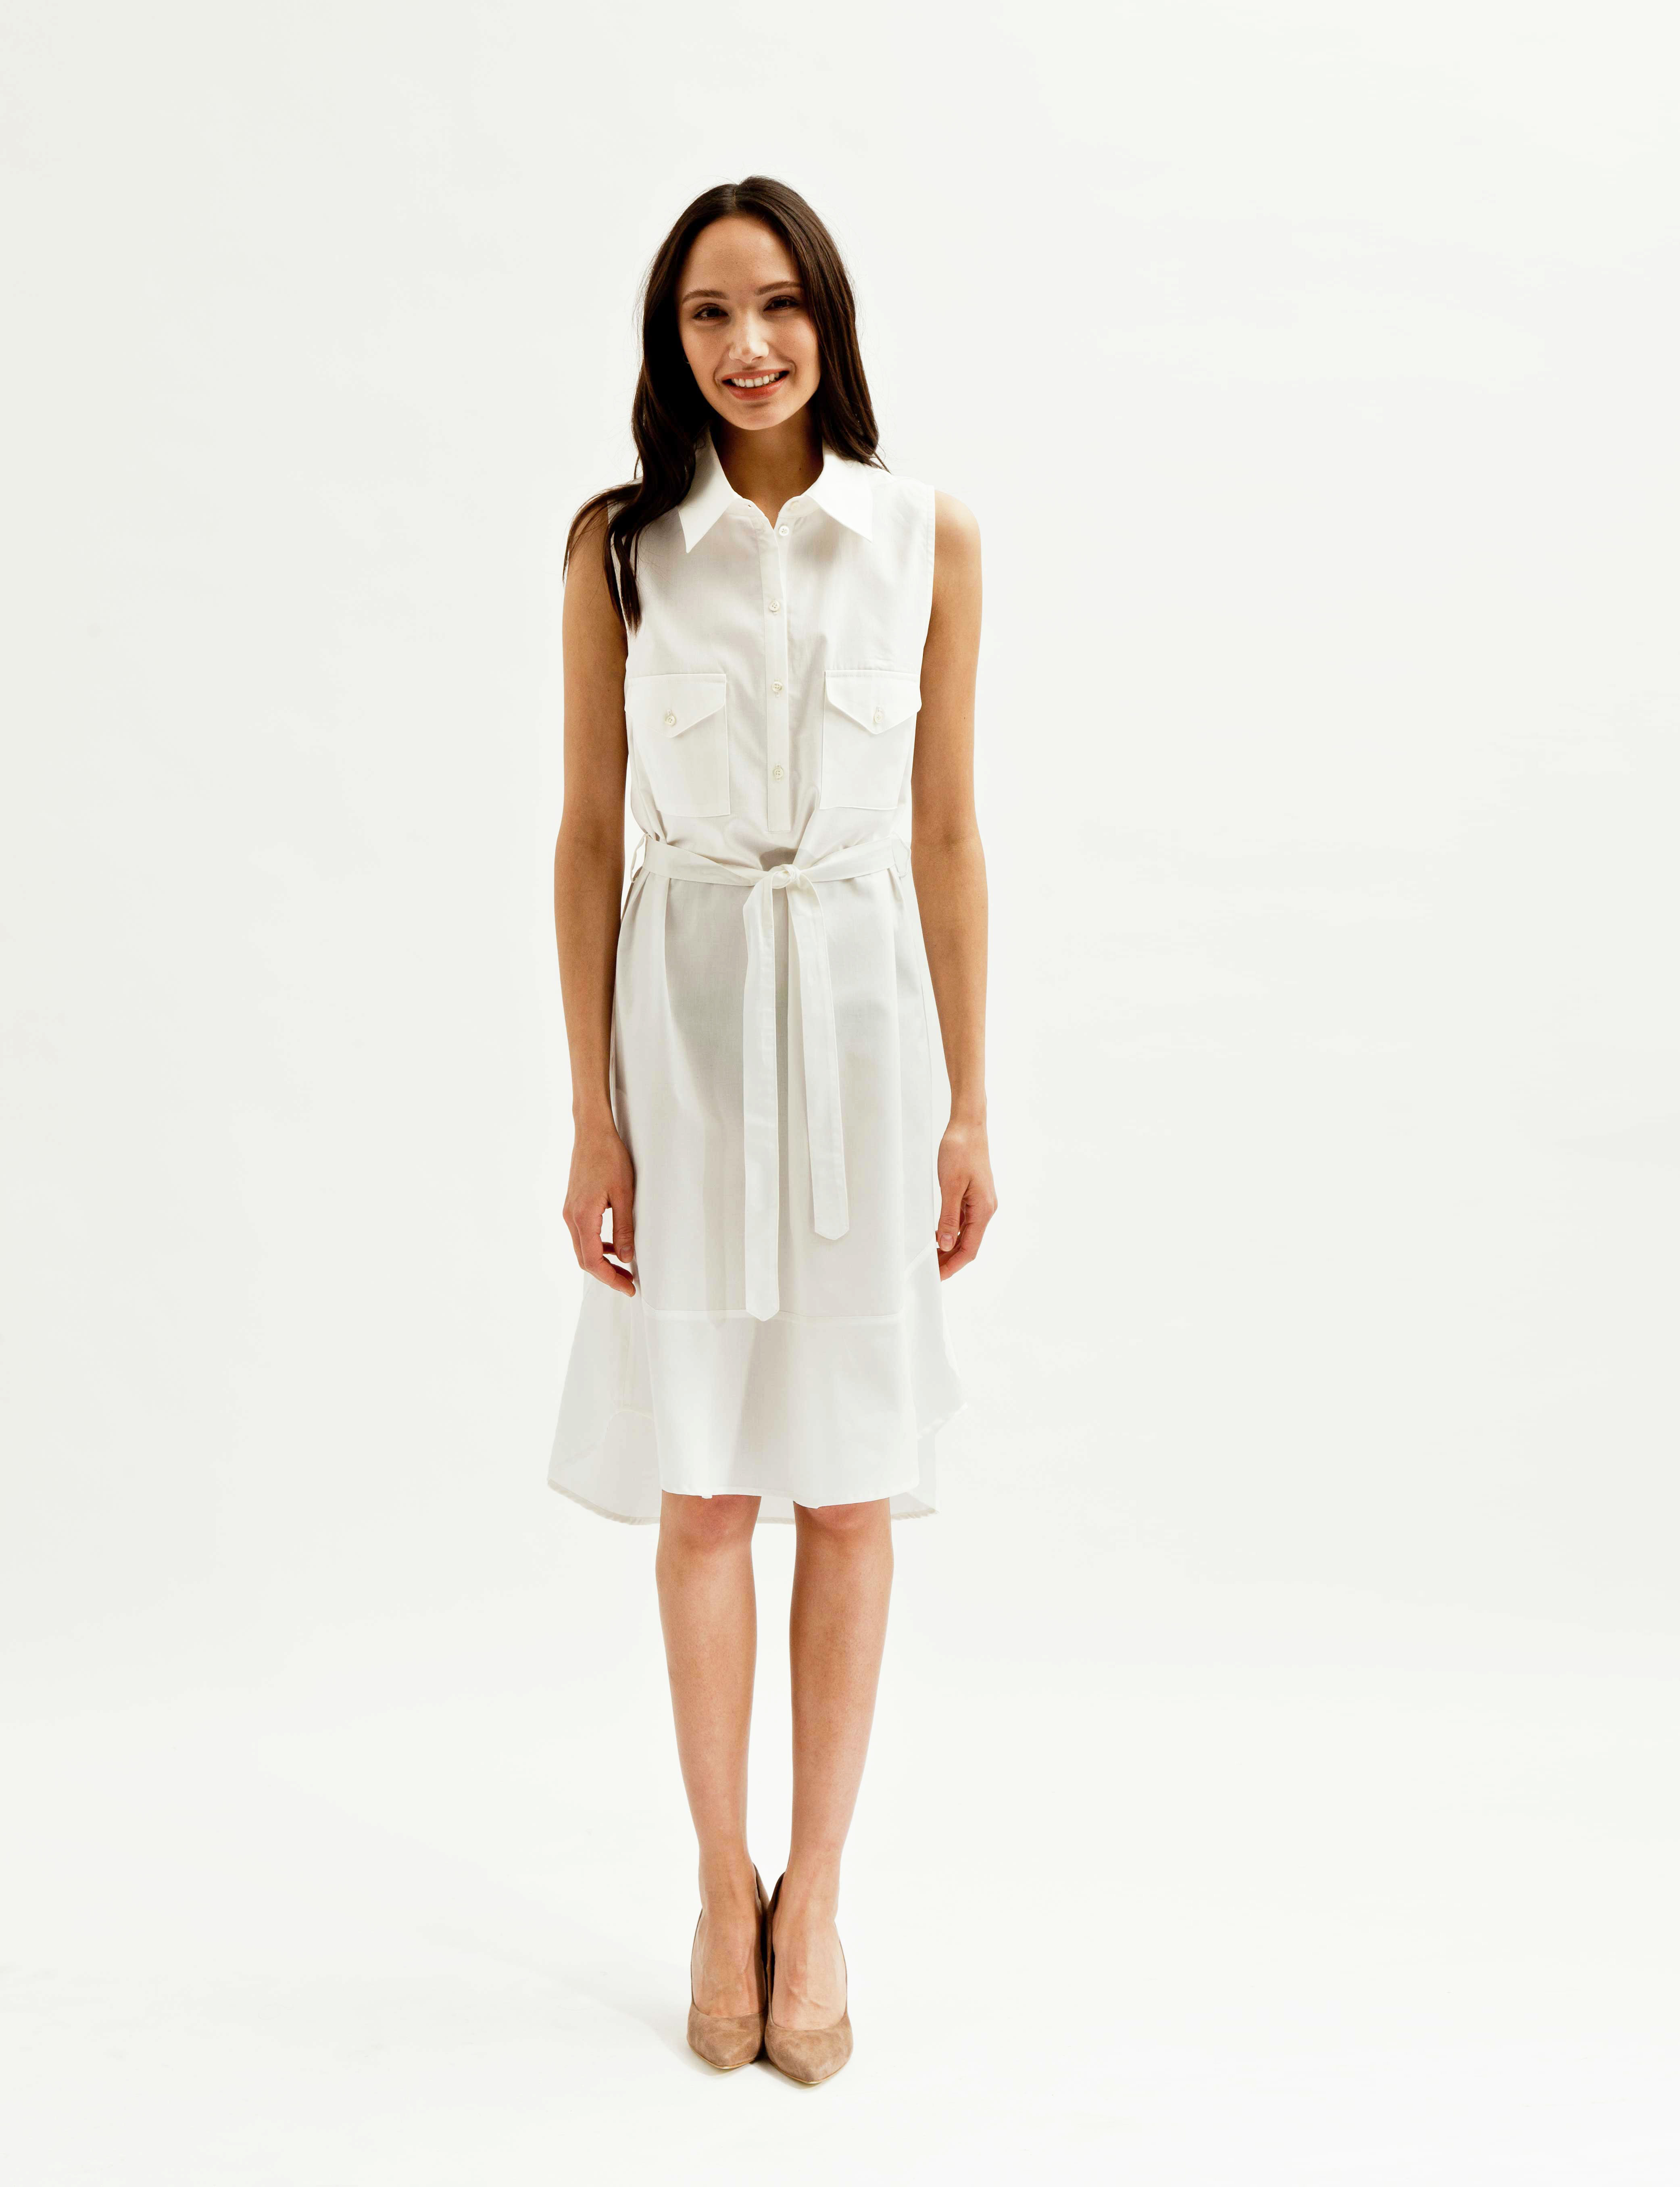 organic-dress-shirtdress-made-in-germany-ethical-fashion-jjackman-smiling-front-brighter